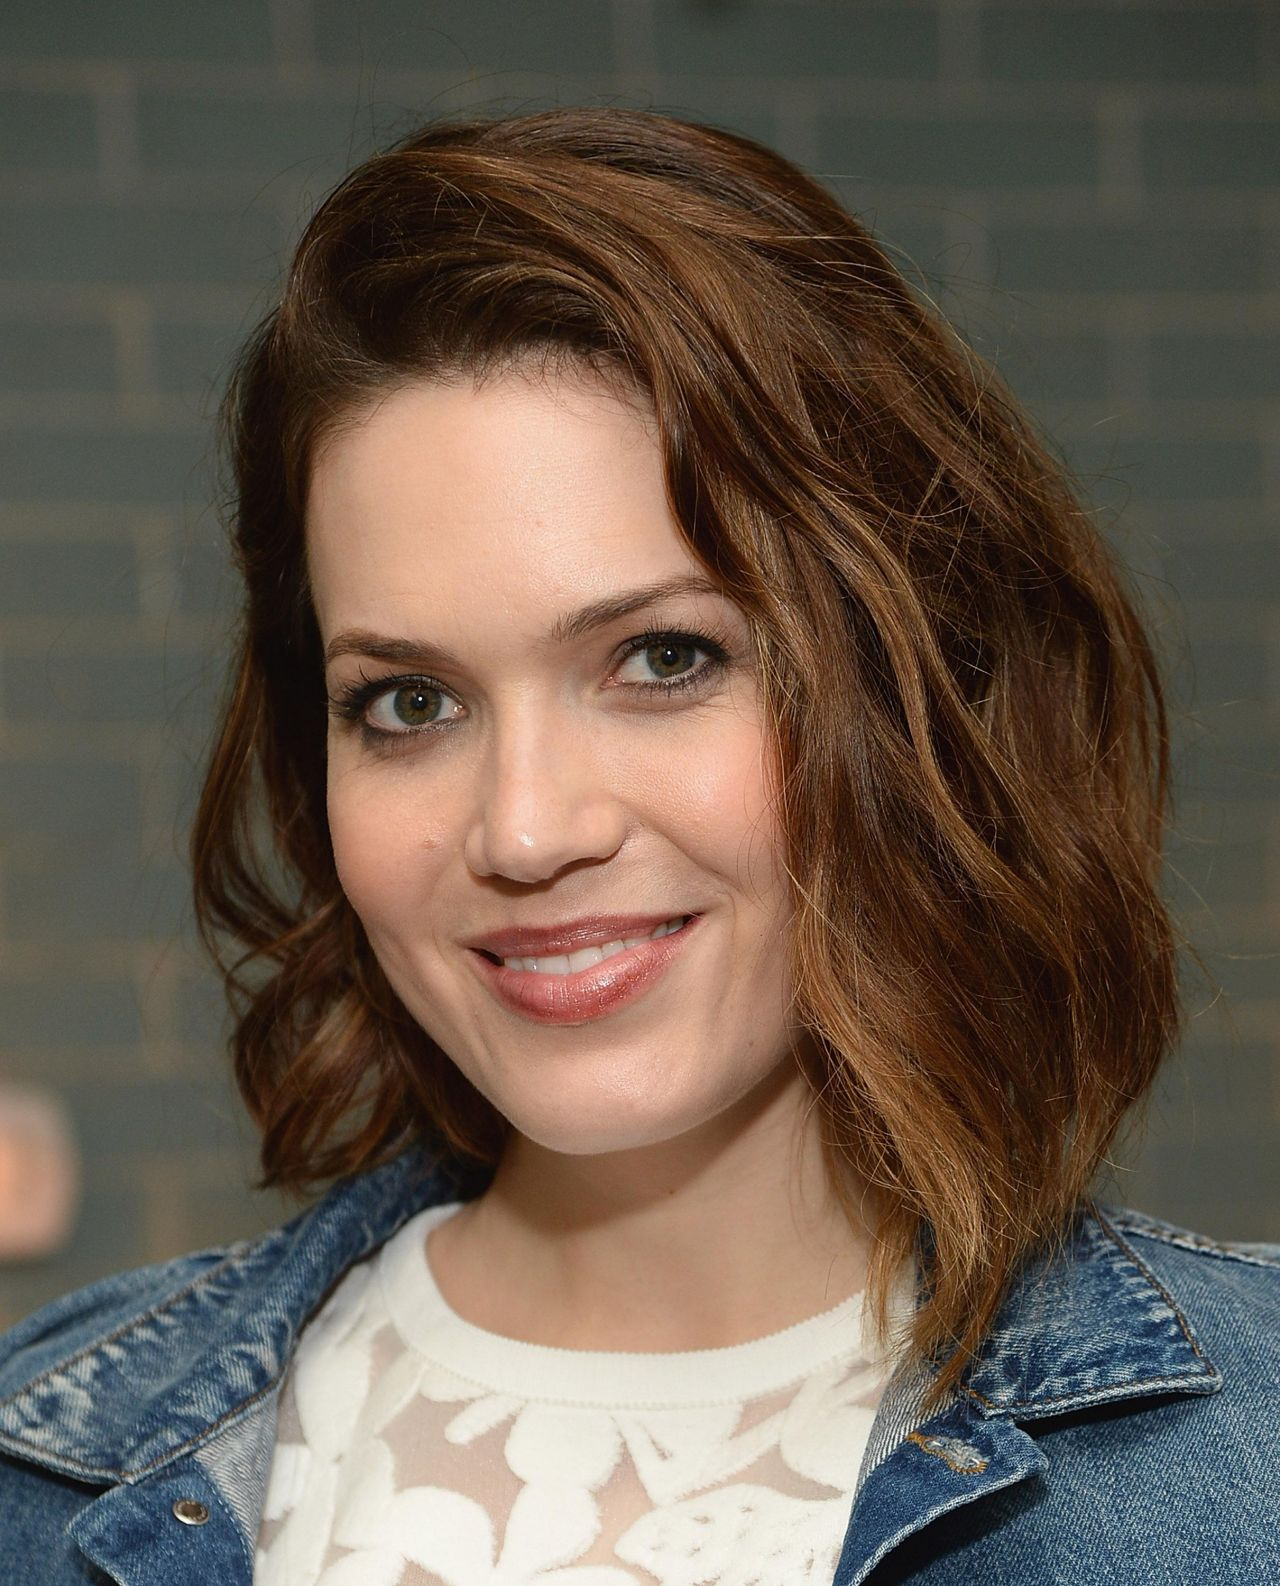 Mandy Moore - Anthropologie Celebrates A Denim Story in Los Angeles, March 2014